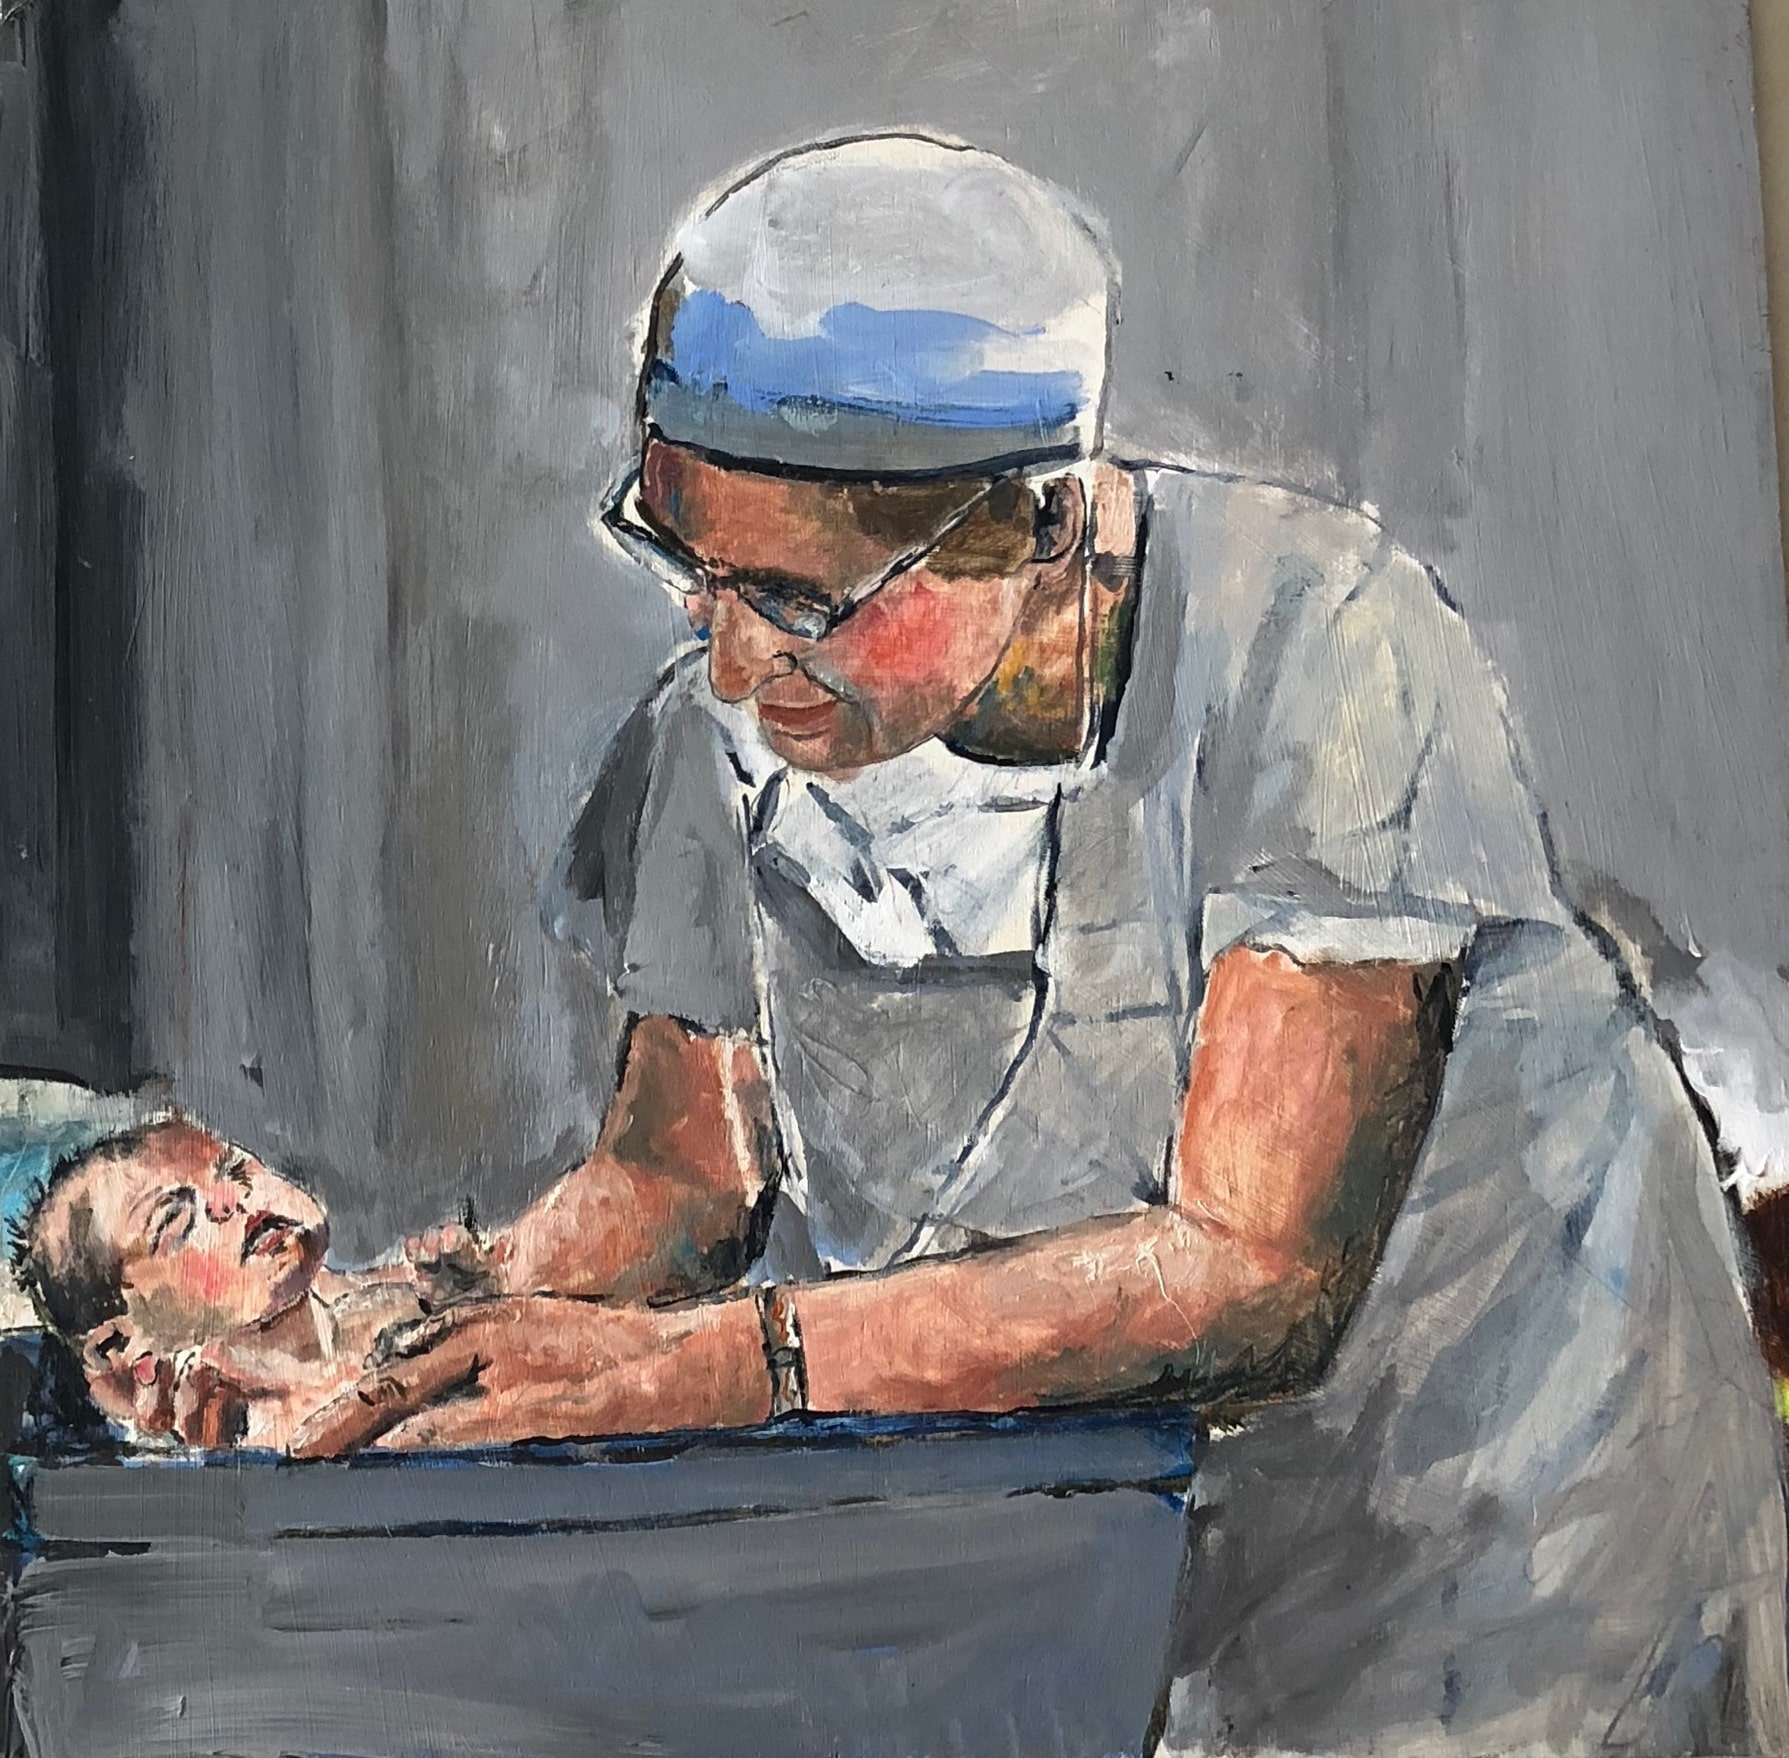 Virginia Apgar, M.D. - Caring For New Born